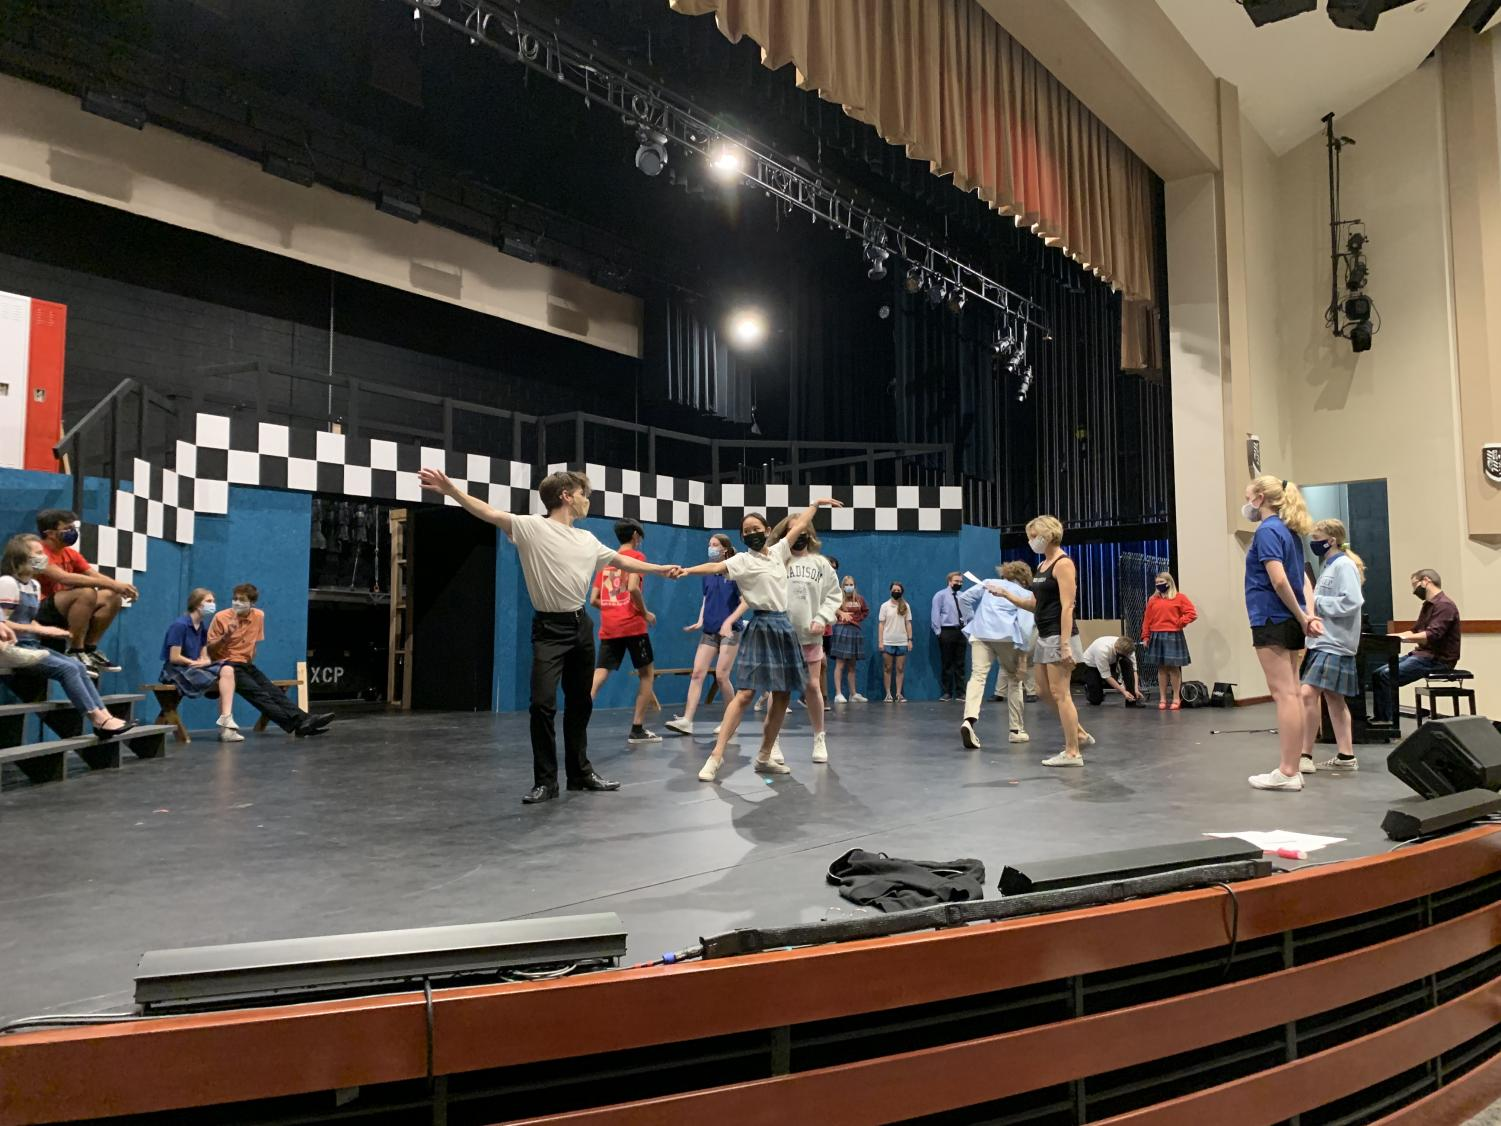 Xavier and Brophy actors take the stage as they rehearse for the dance number in the upcoming scene. A commitment to long rehearsal hours from the cast and crew is essential for a successful opening night.